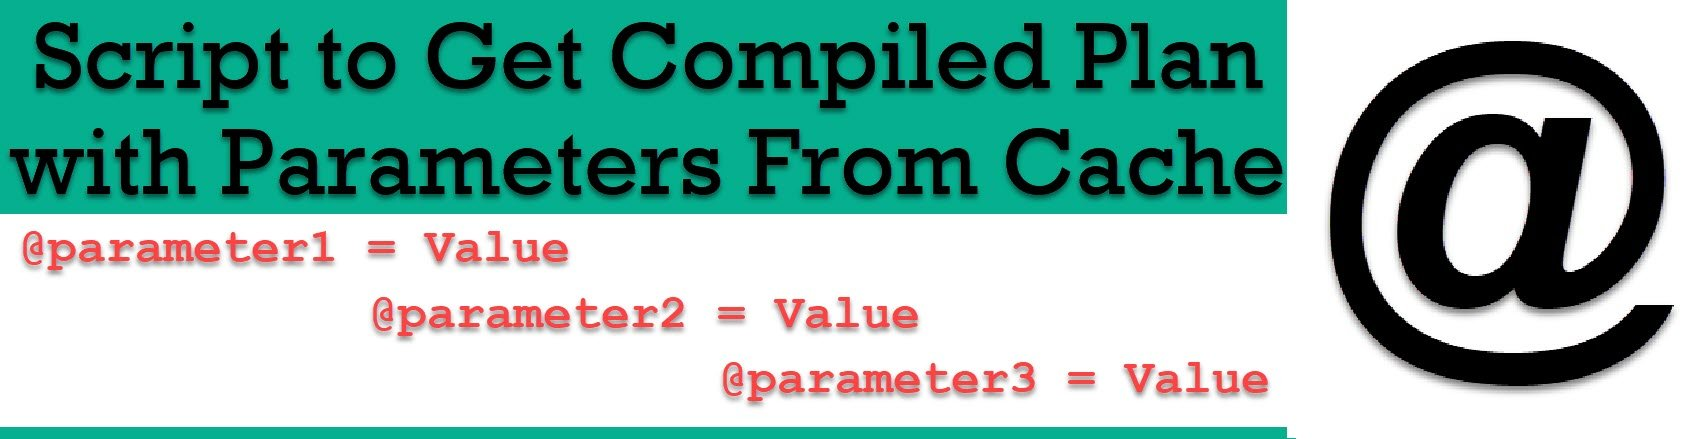 SQL SERVER - Script to Get Compiled Plan with Parameters From Cache compiledplan